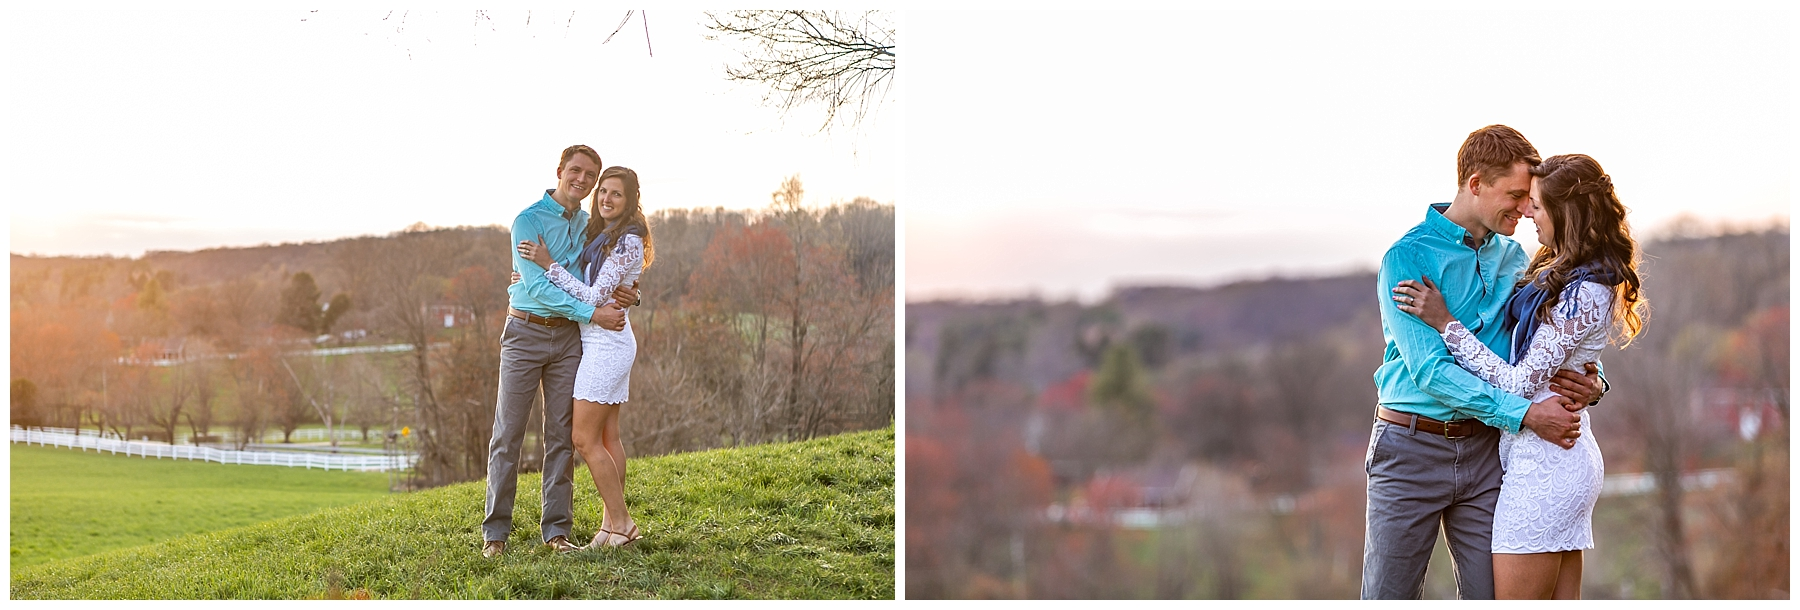 Chelsea Phil Private Estate Engagement Living Radiant Photography photos color_0039.jpg